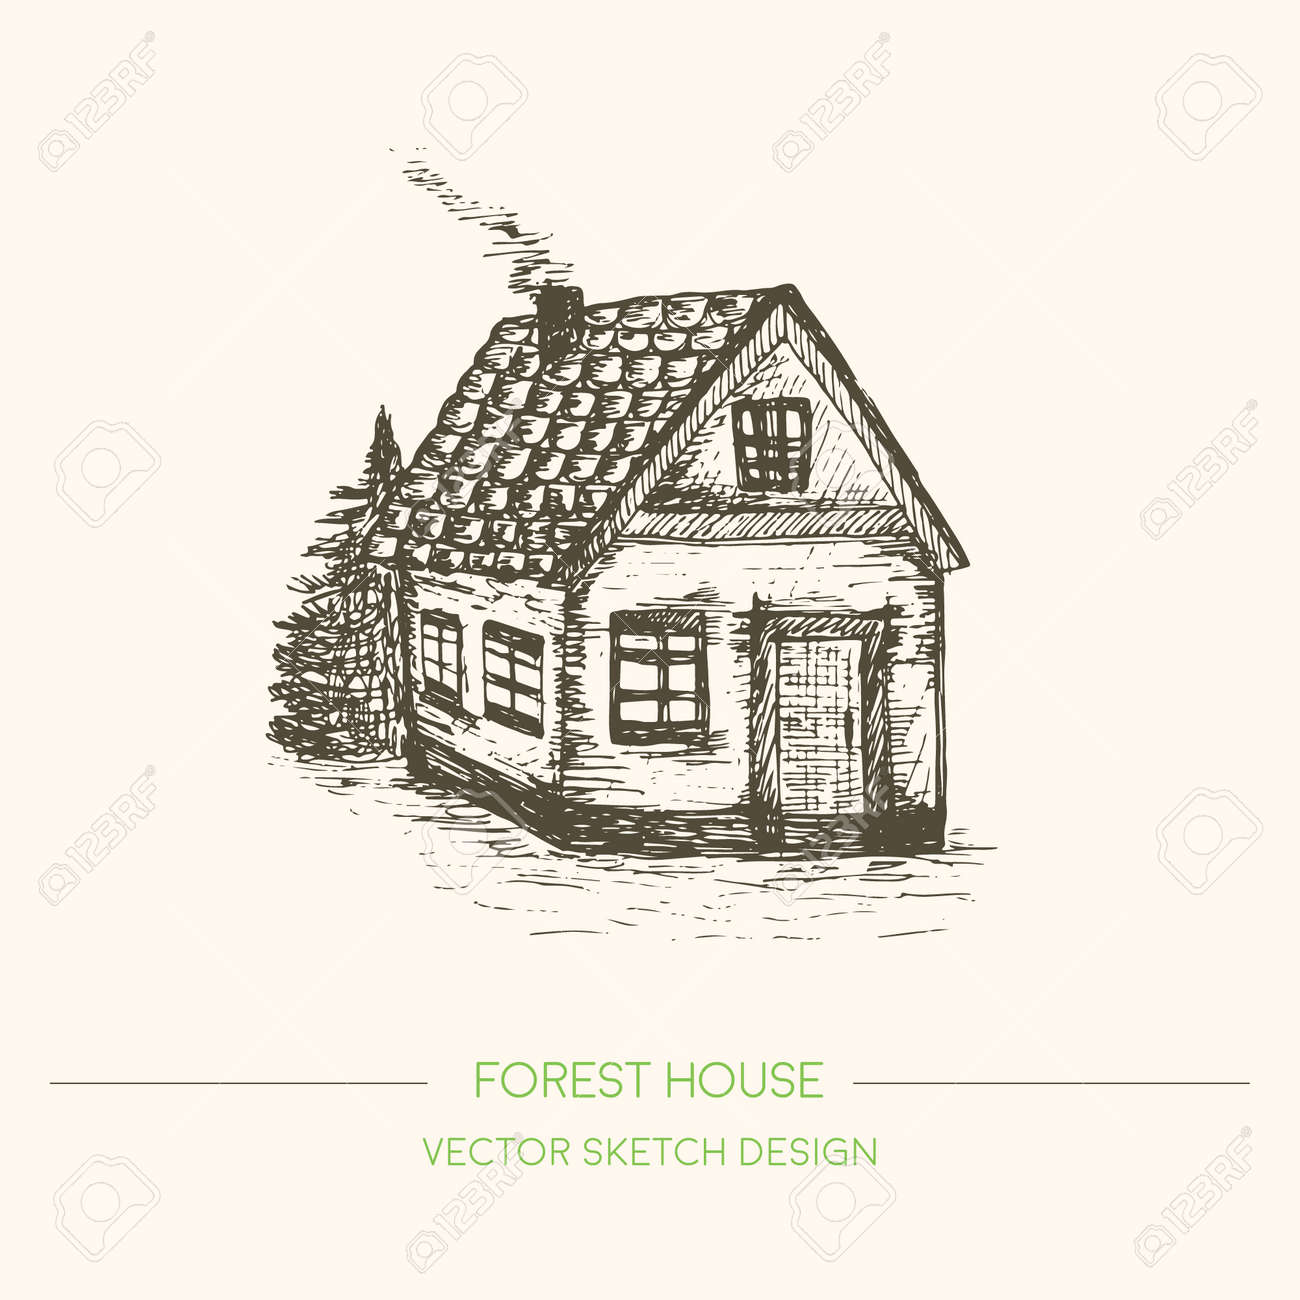 Wood House In Retro Sketch Style Vector Vintage Background